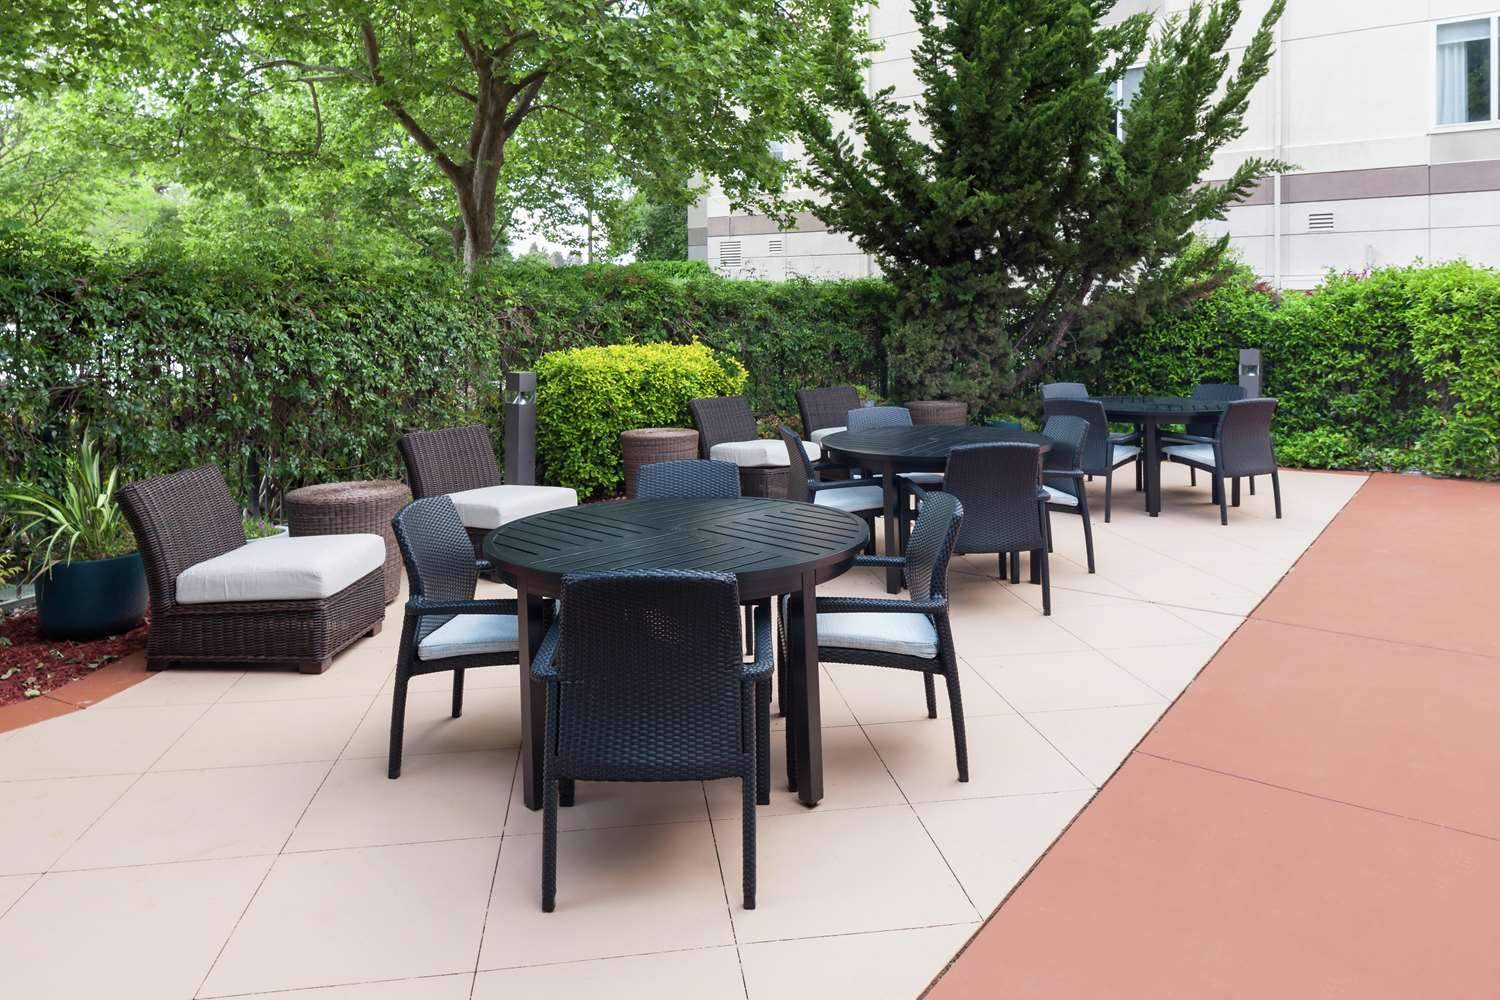 Meetings And Events At Hilton Garden